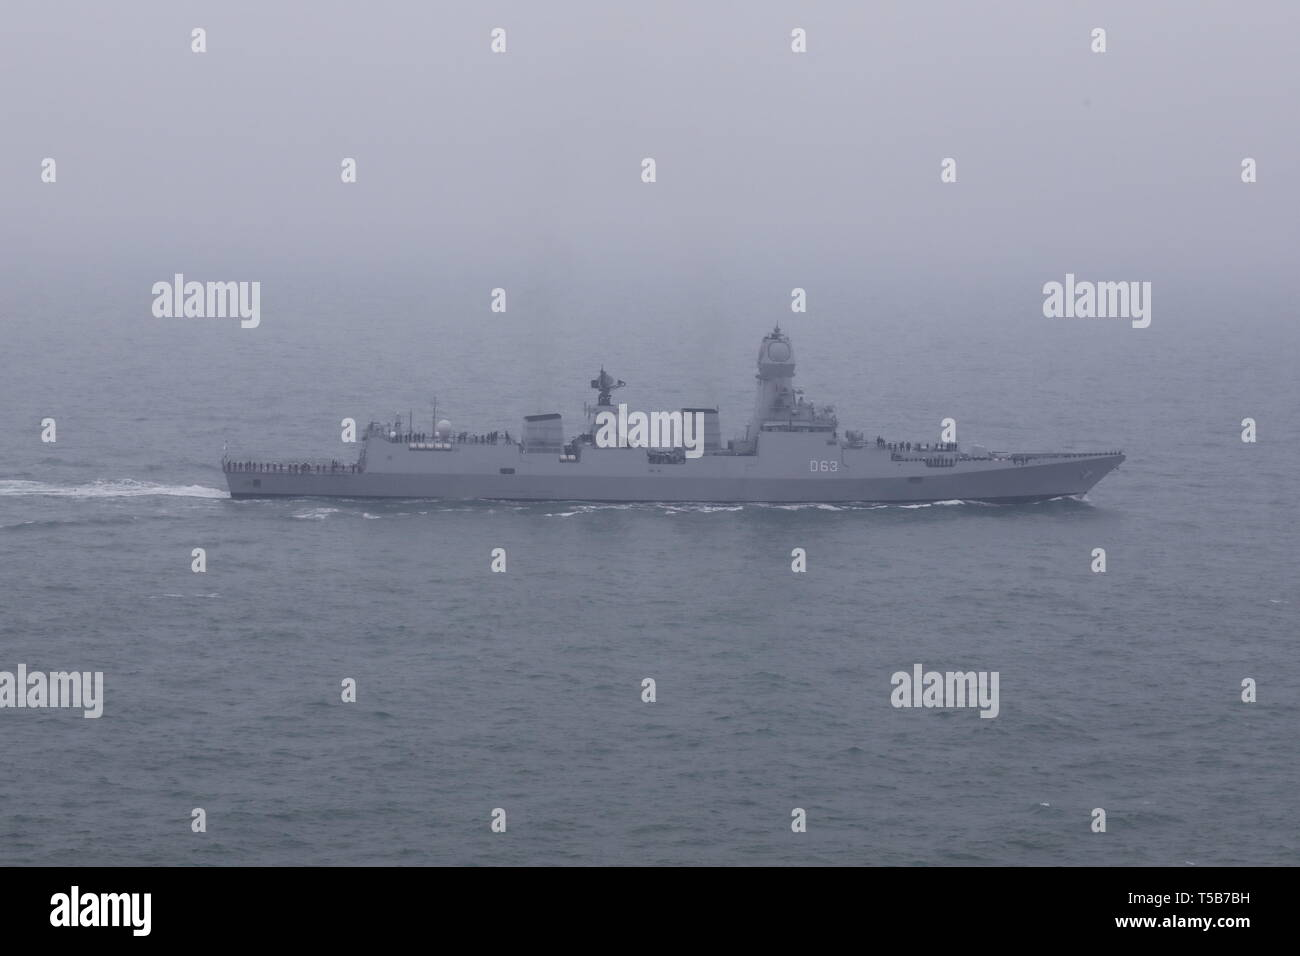 Qingdao. 23rd Apr, 2019. Aerial photo taken on April 23, 2019 shows Indian Navy destroyer INS Kolkata in the waters off Qingdao, east China's Shandong Province. The vessel was here for a naval parade staged to mark the 70th founding anniversary of the Chinese People's Liberation Army (PLA) Navy on Tuesday. Credit: Ju Zhenhua/Xinhua/Alamy Live News - Stock Image